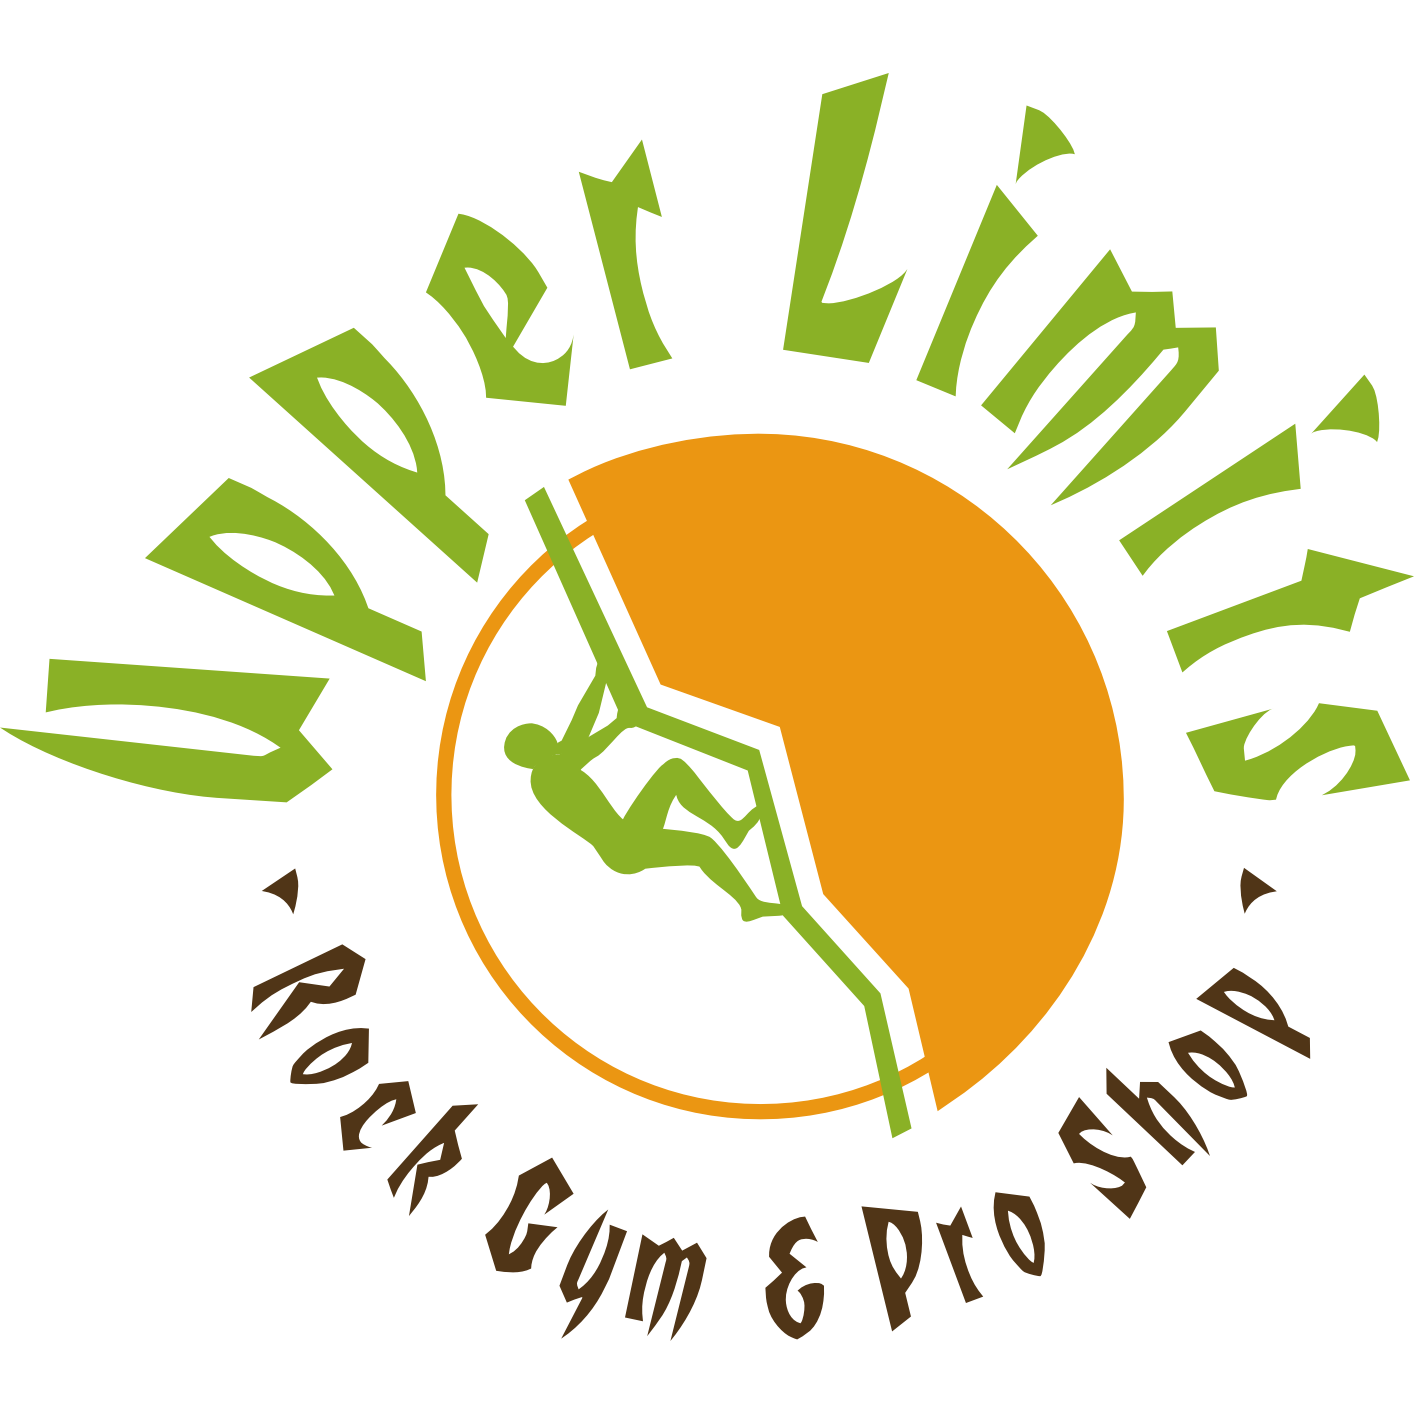 Upper Limits Rock Climbing Gym - Maryland Heights